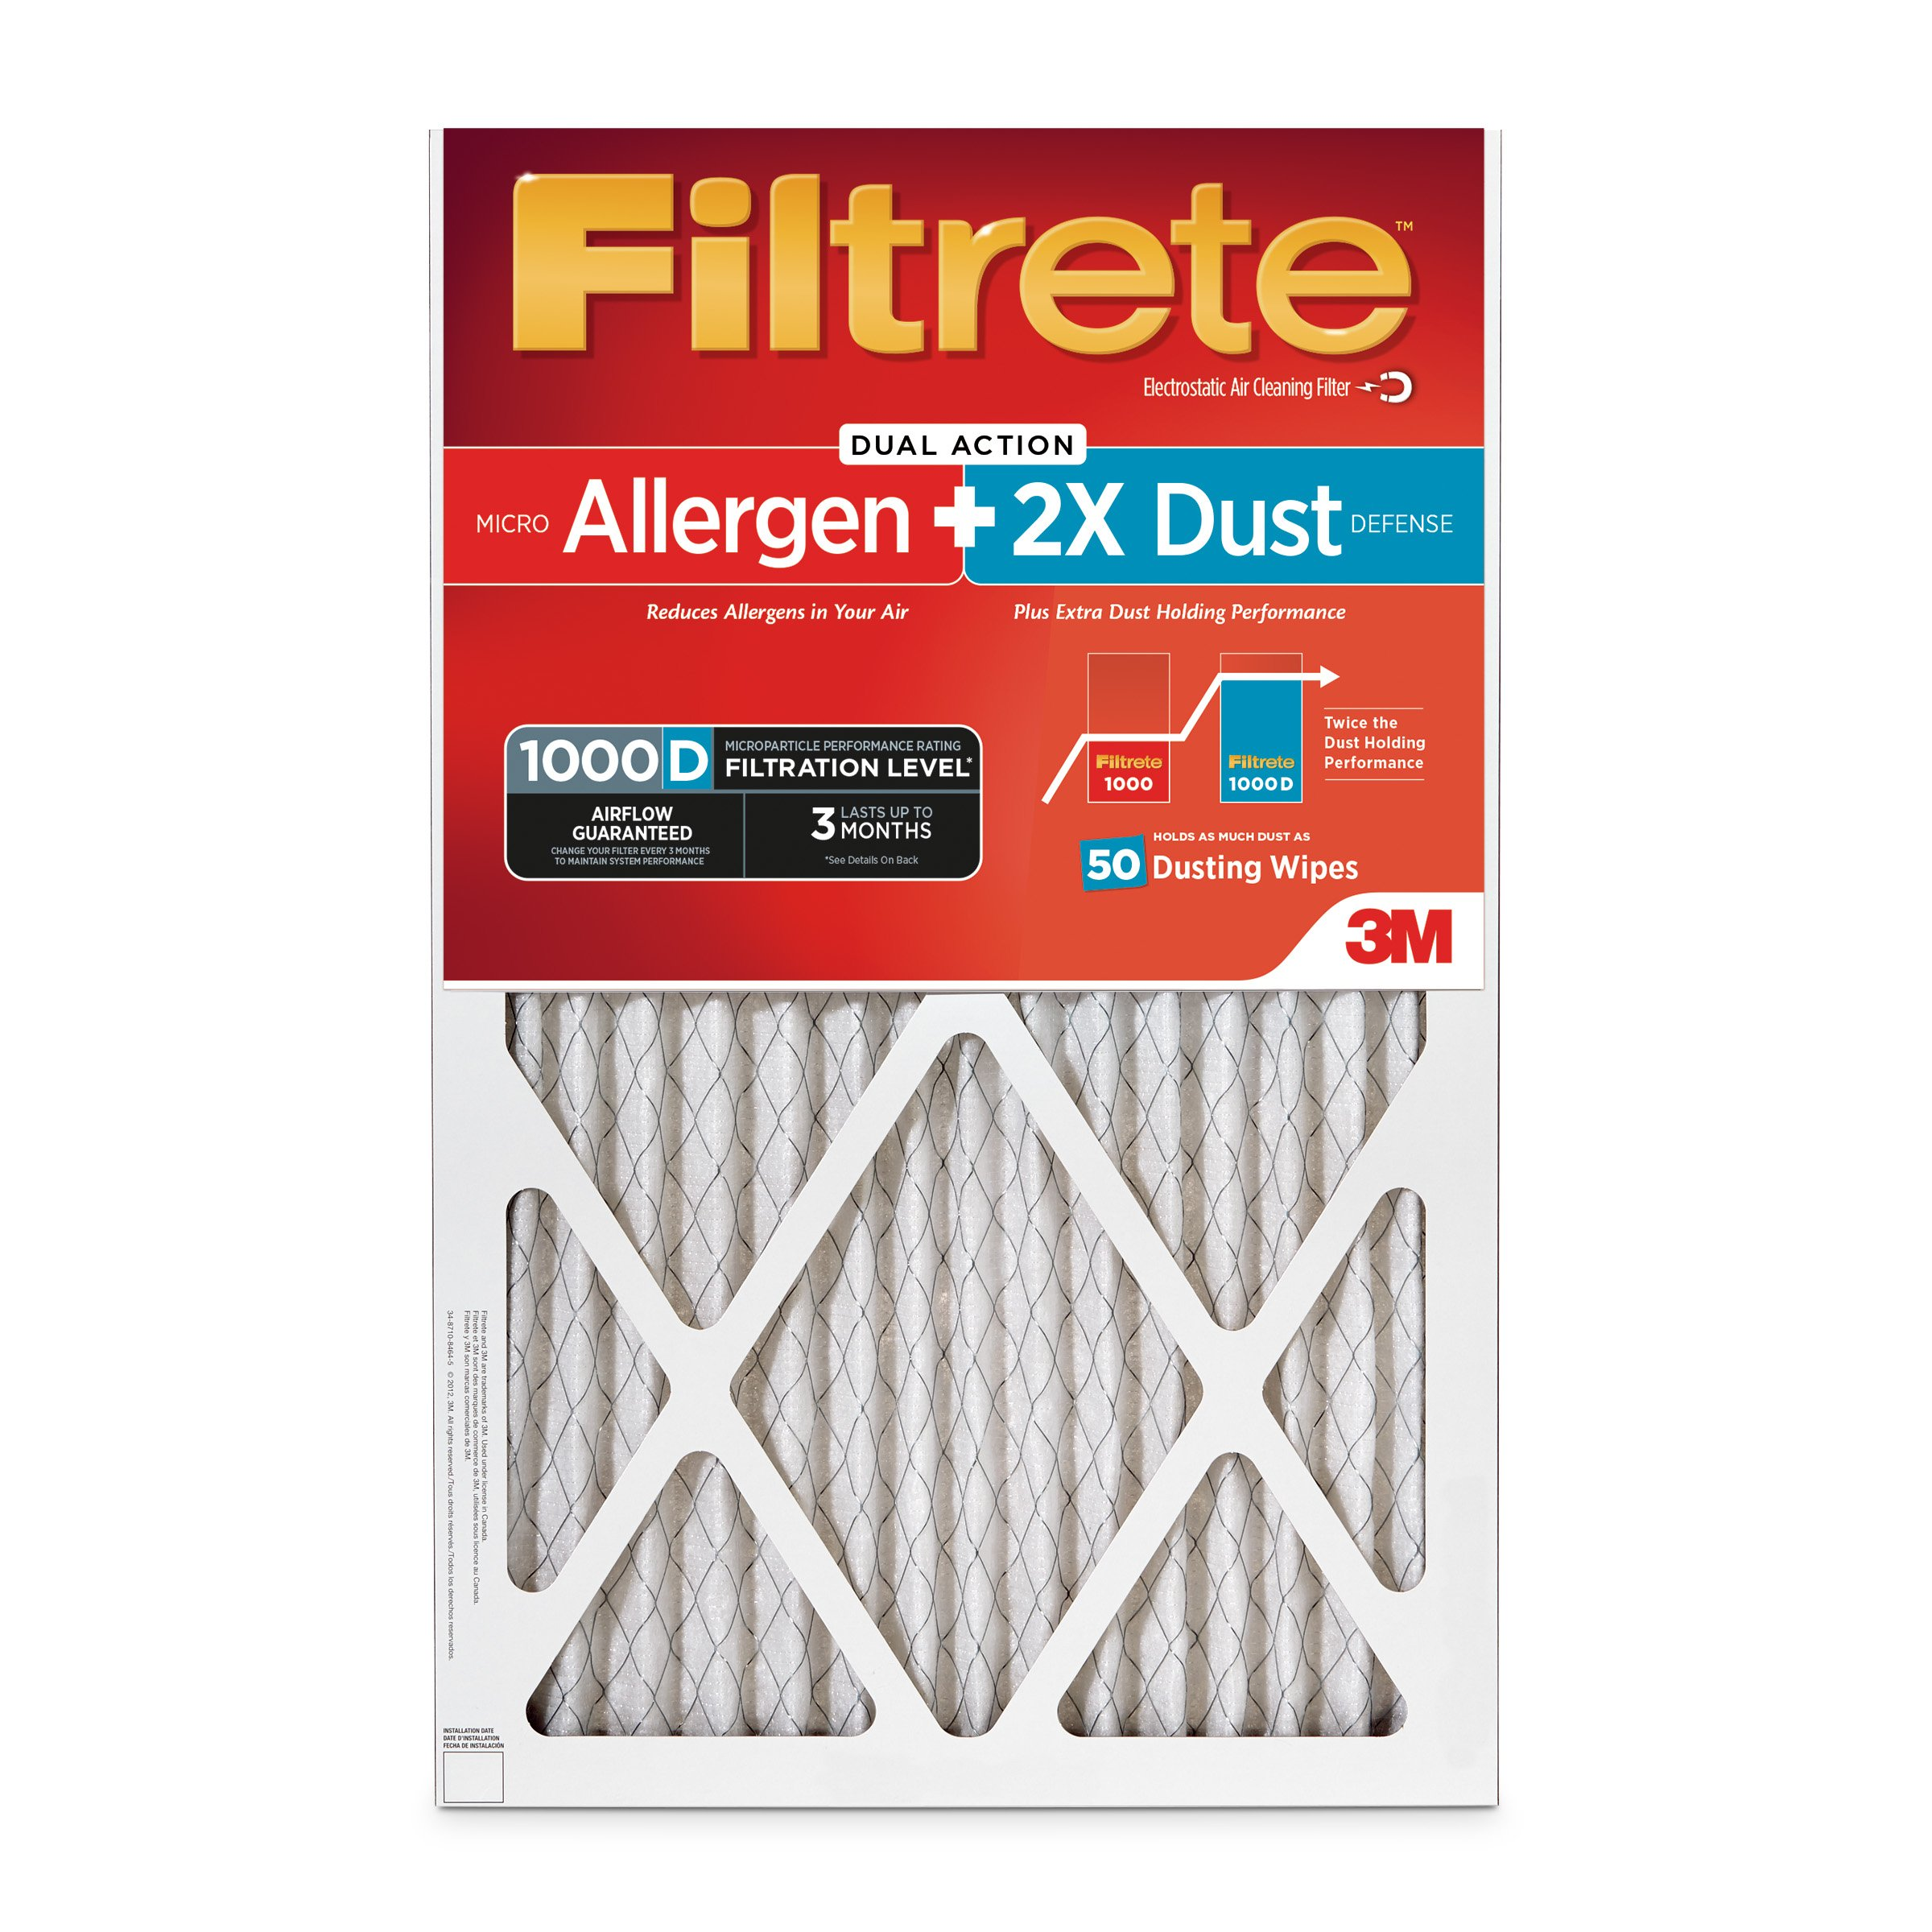 Filtrete MPR 1000D 20 x 25 x 1 Micro Allergen PLUS DUST HVAC Air Filter, Captures Small Particles, Uncompromised Airflow, 2-Pack